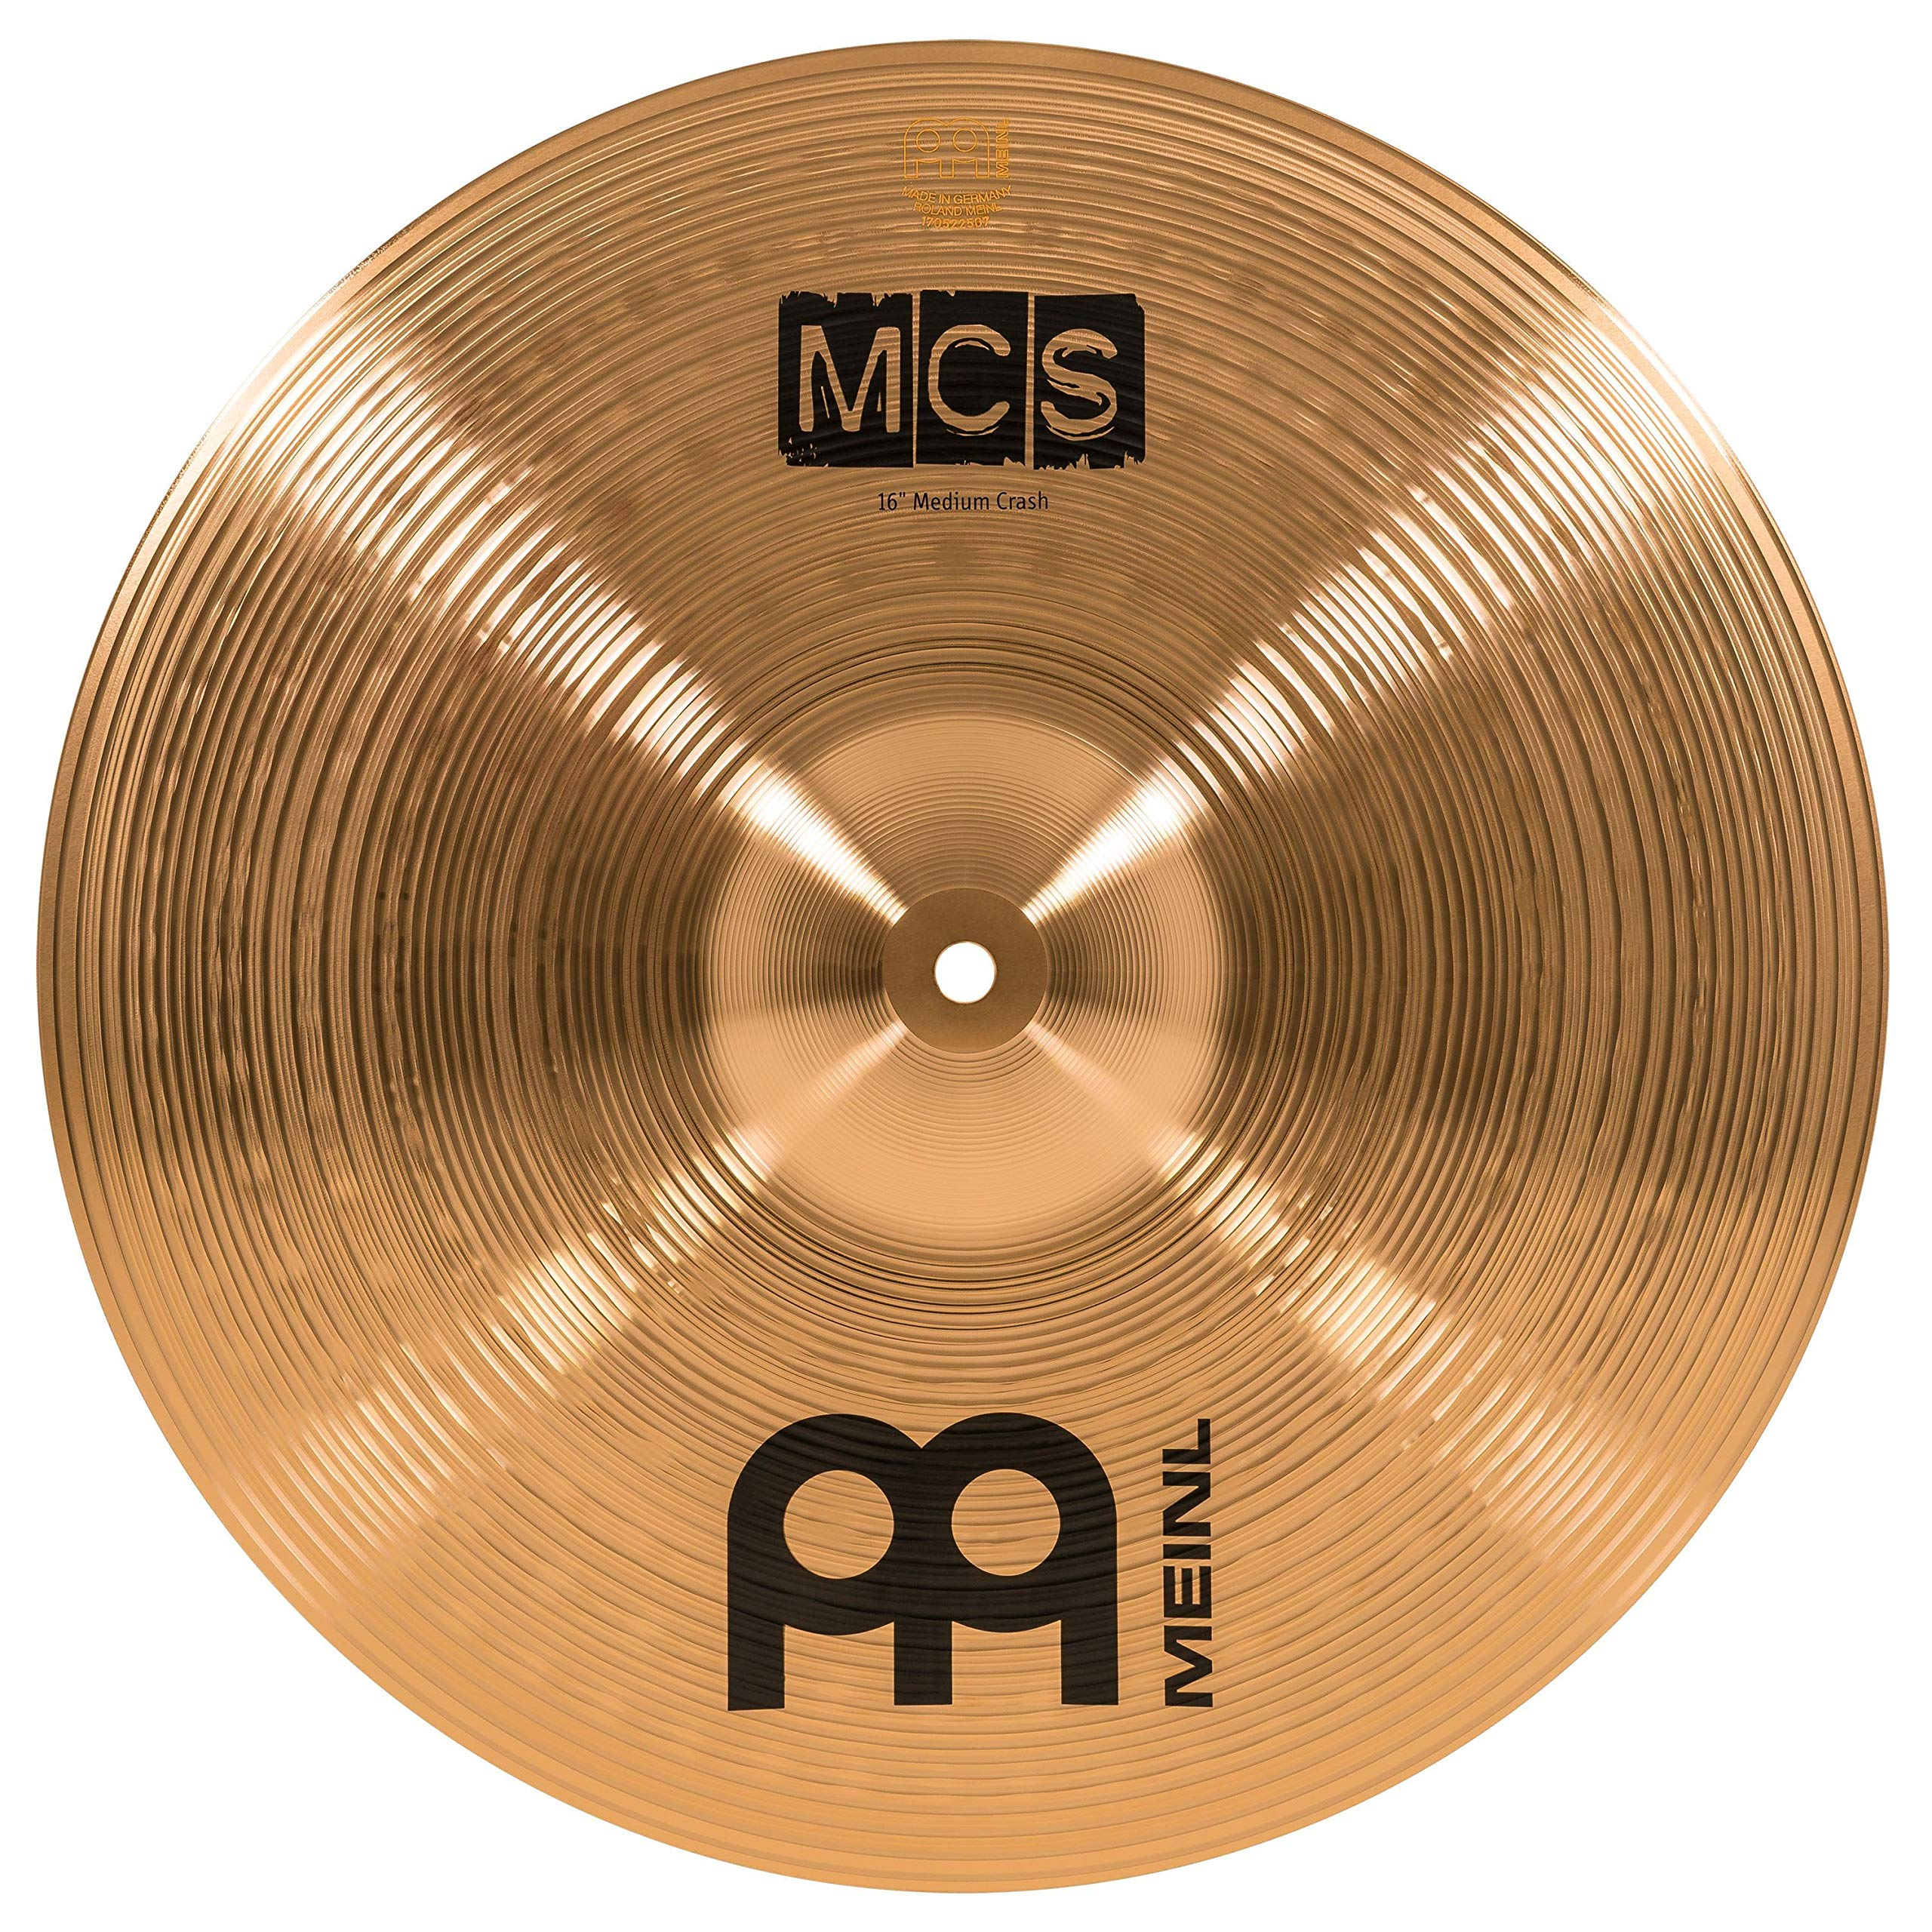 Meinl 16'' Crash Cymbal - MCS Traditional Finish Bronze for Drum Set, Made In Germany, 2-YEAR WARRANTY (MCS16MC)